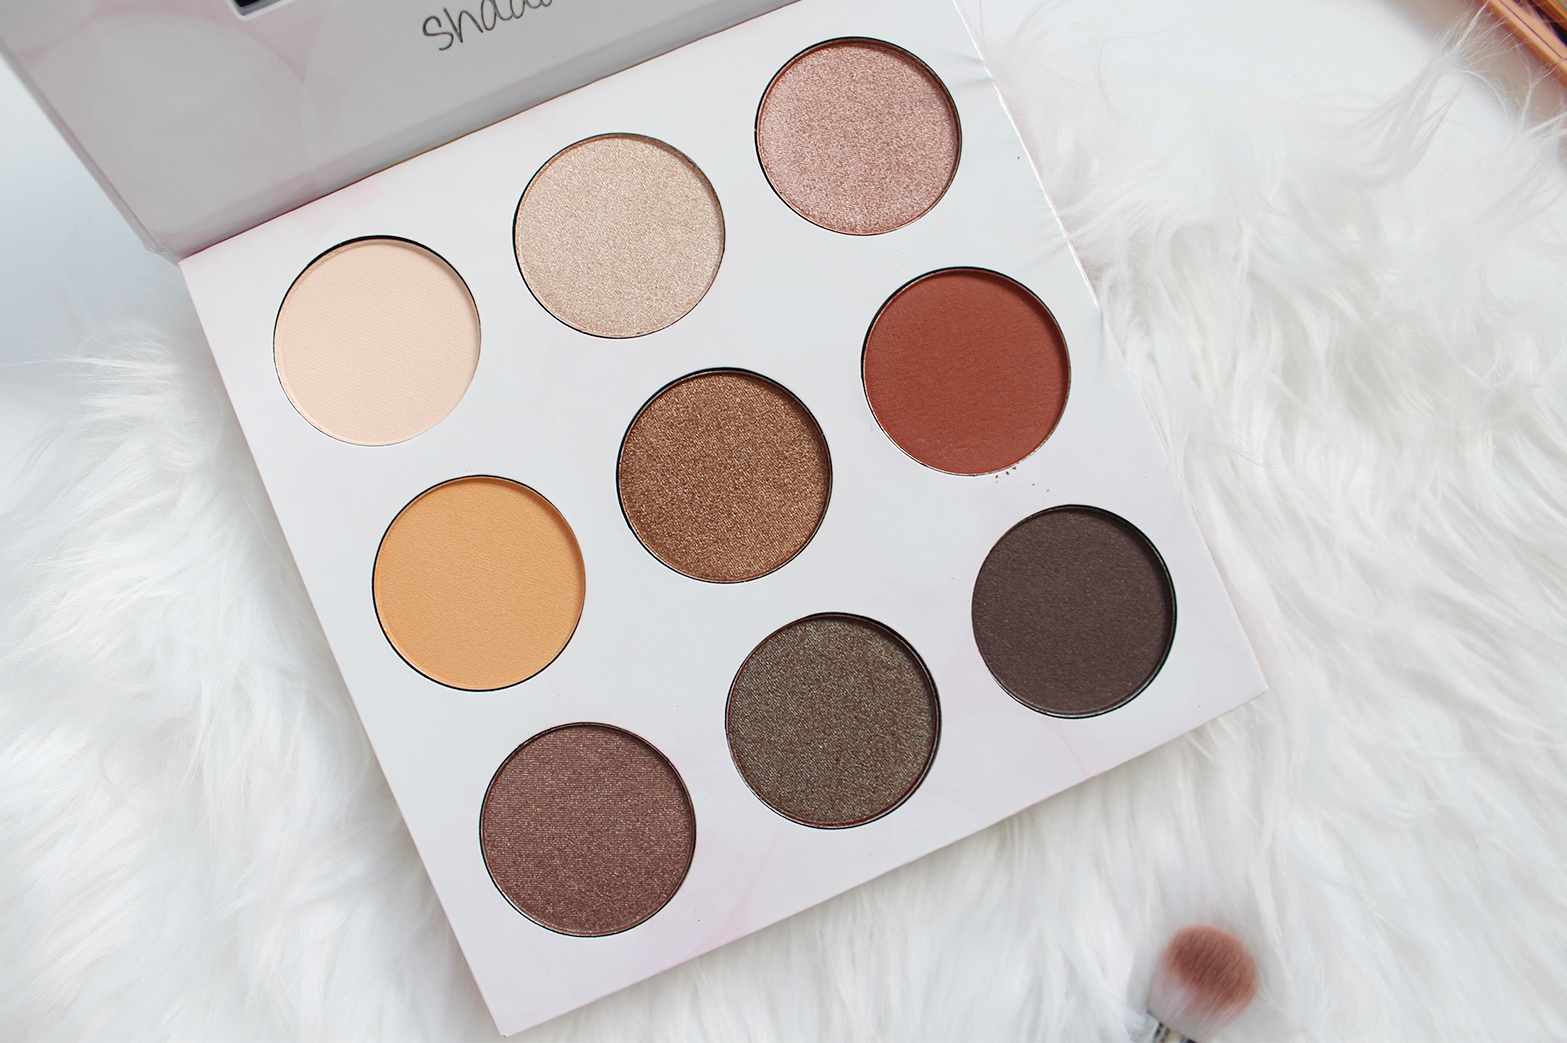 BH COSMETICS | Shaaanxo 18 Color Eyeshadow + Lipstick Palette - Review + Swatches - CassandraMyee